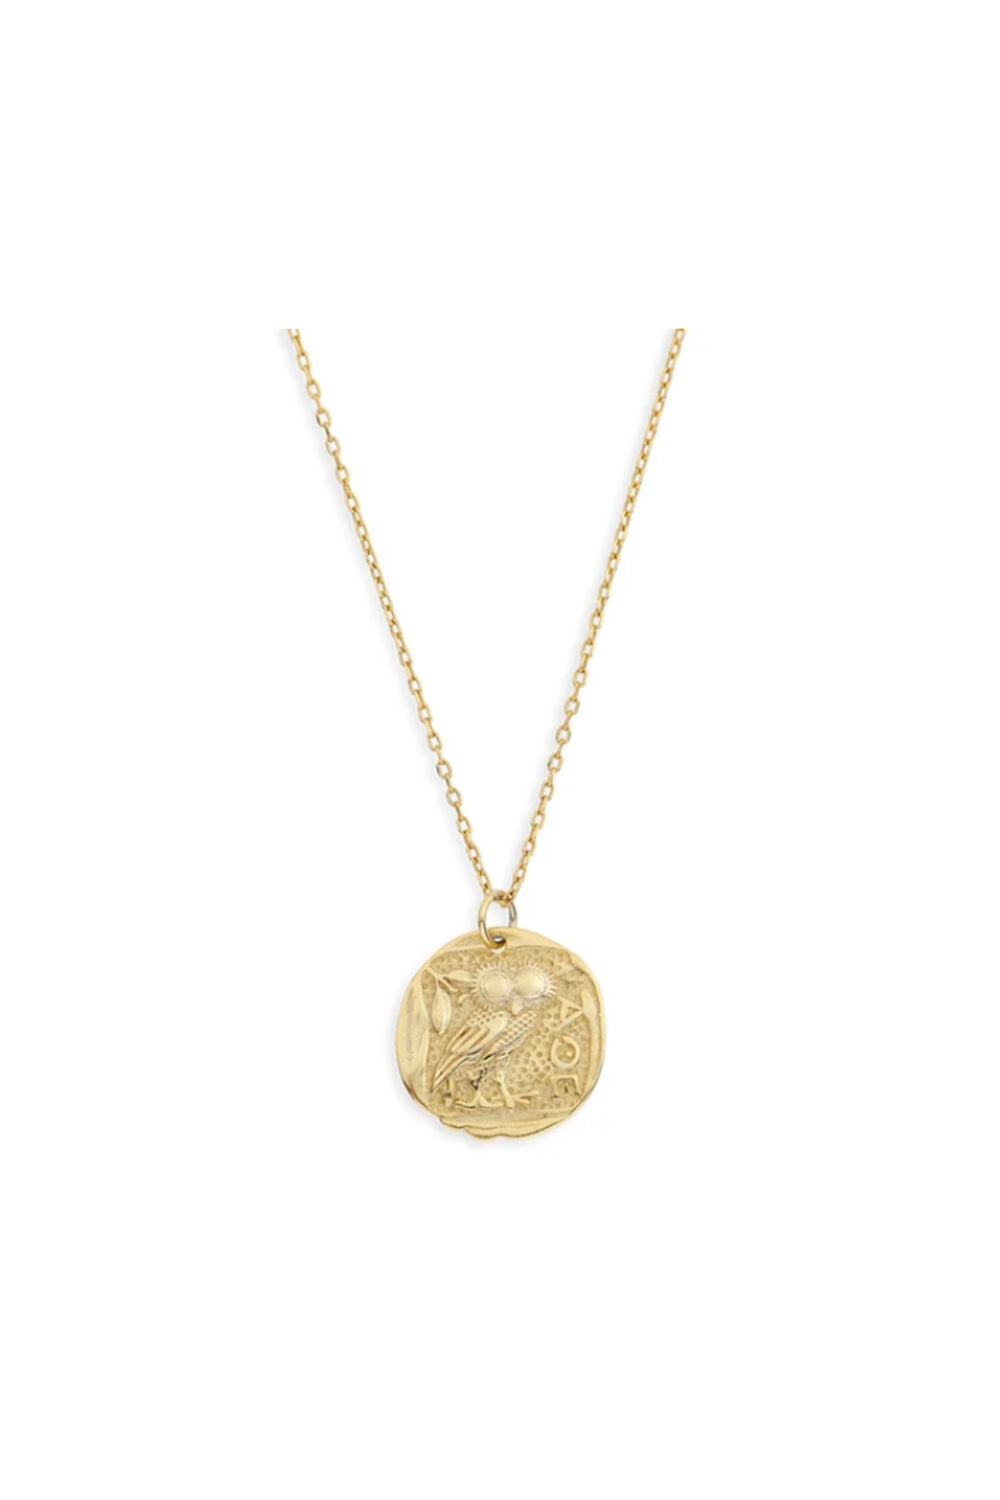 ARMS OF EVE - Pegasus Gold Pendent Necklace - Australian Fashion and Accessories Boutique - Faid Store